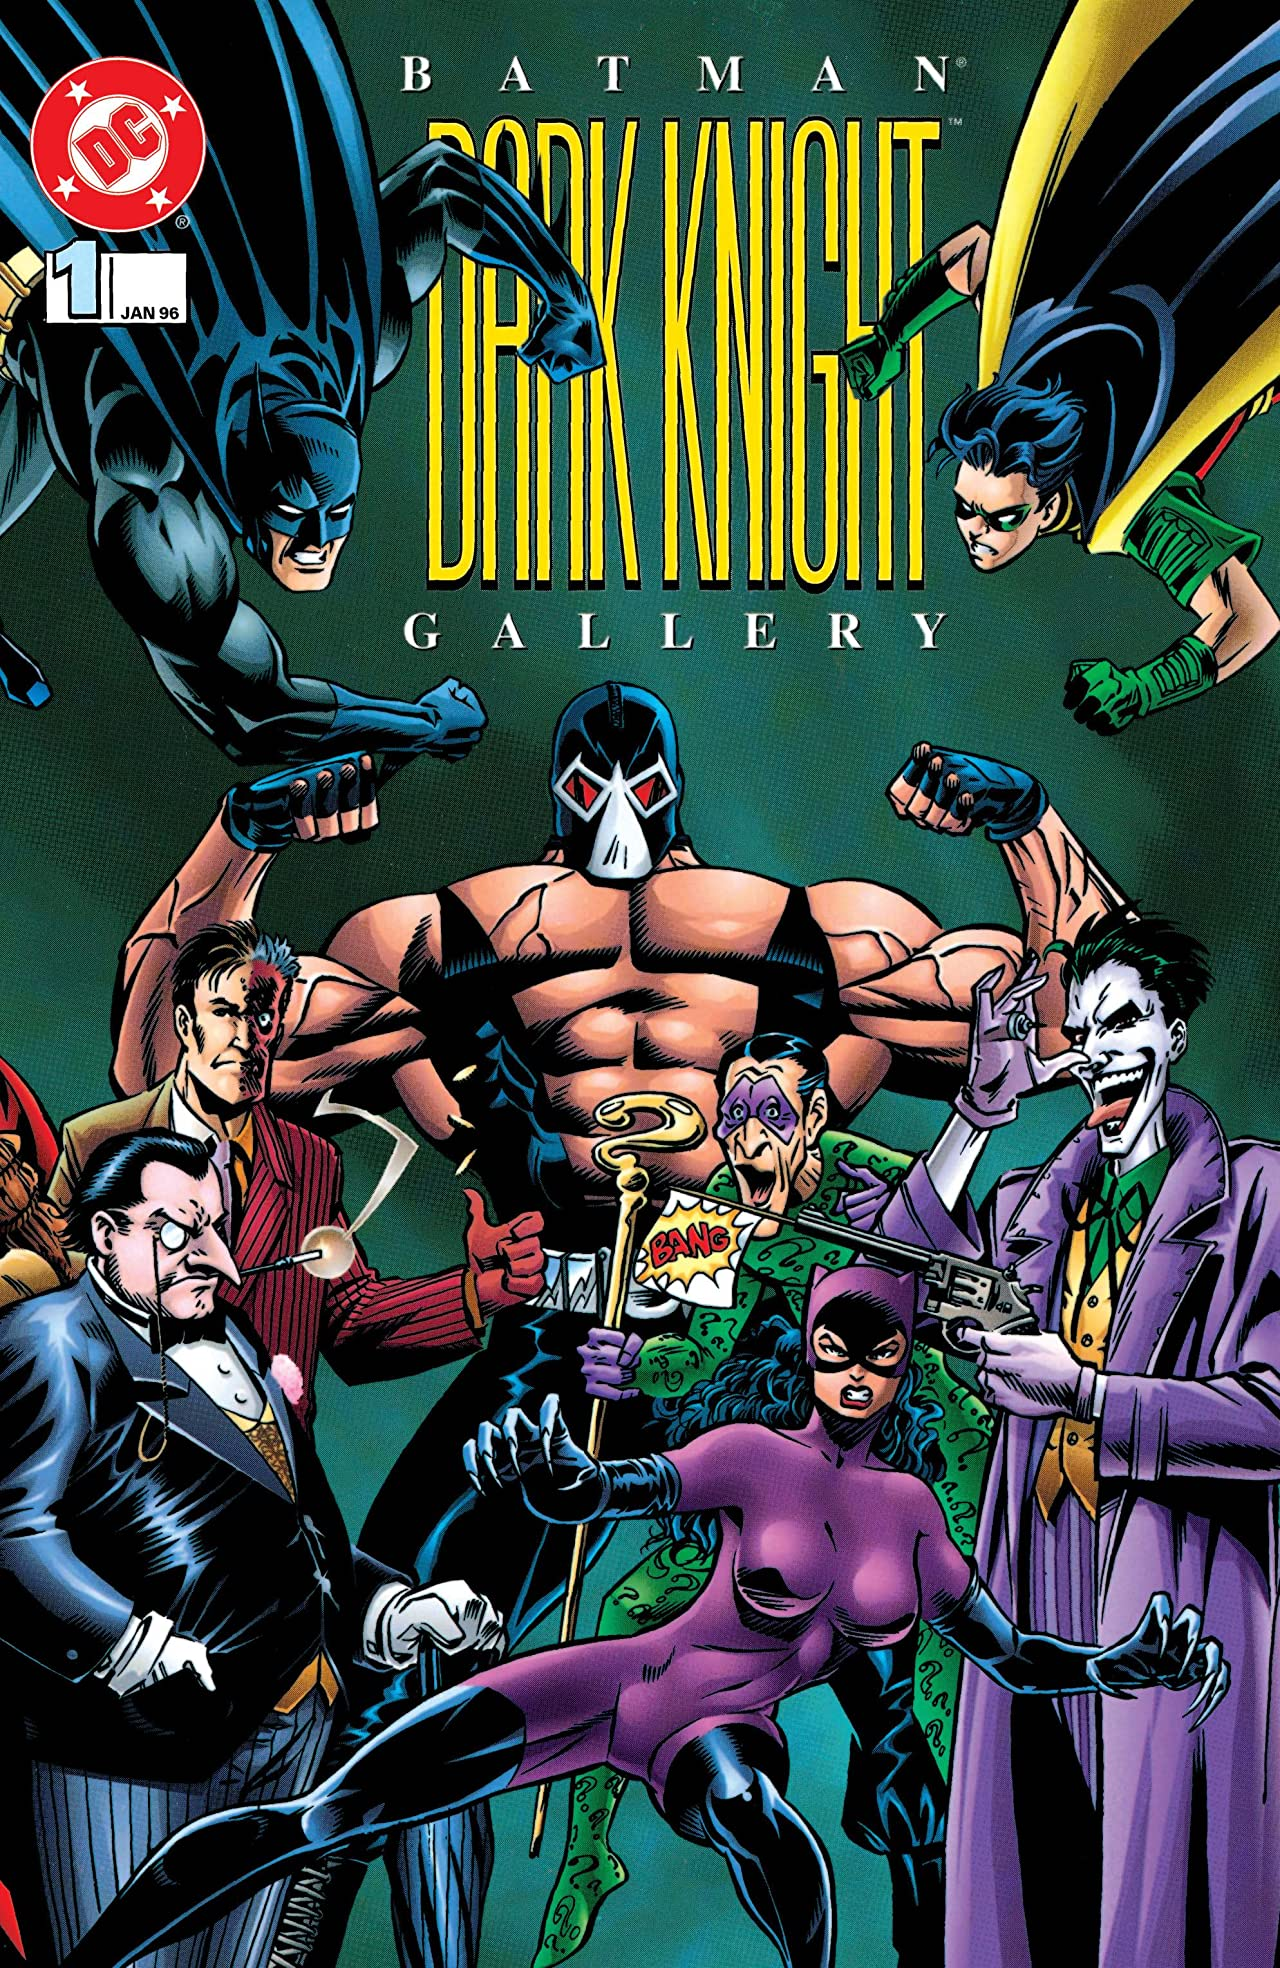 Batman: Dark Knight Gallery (1995) #1